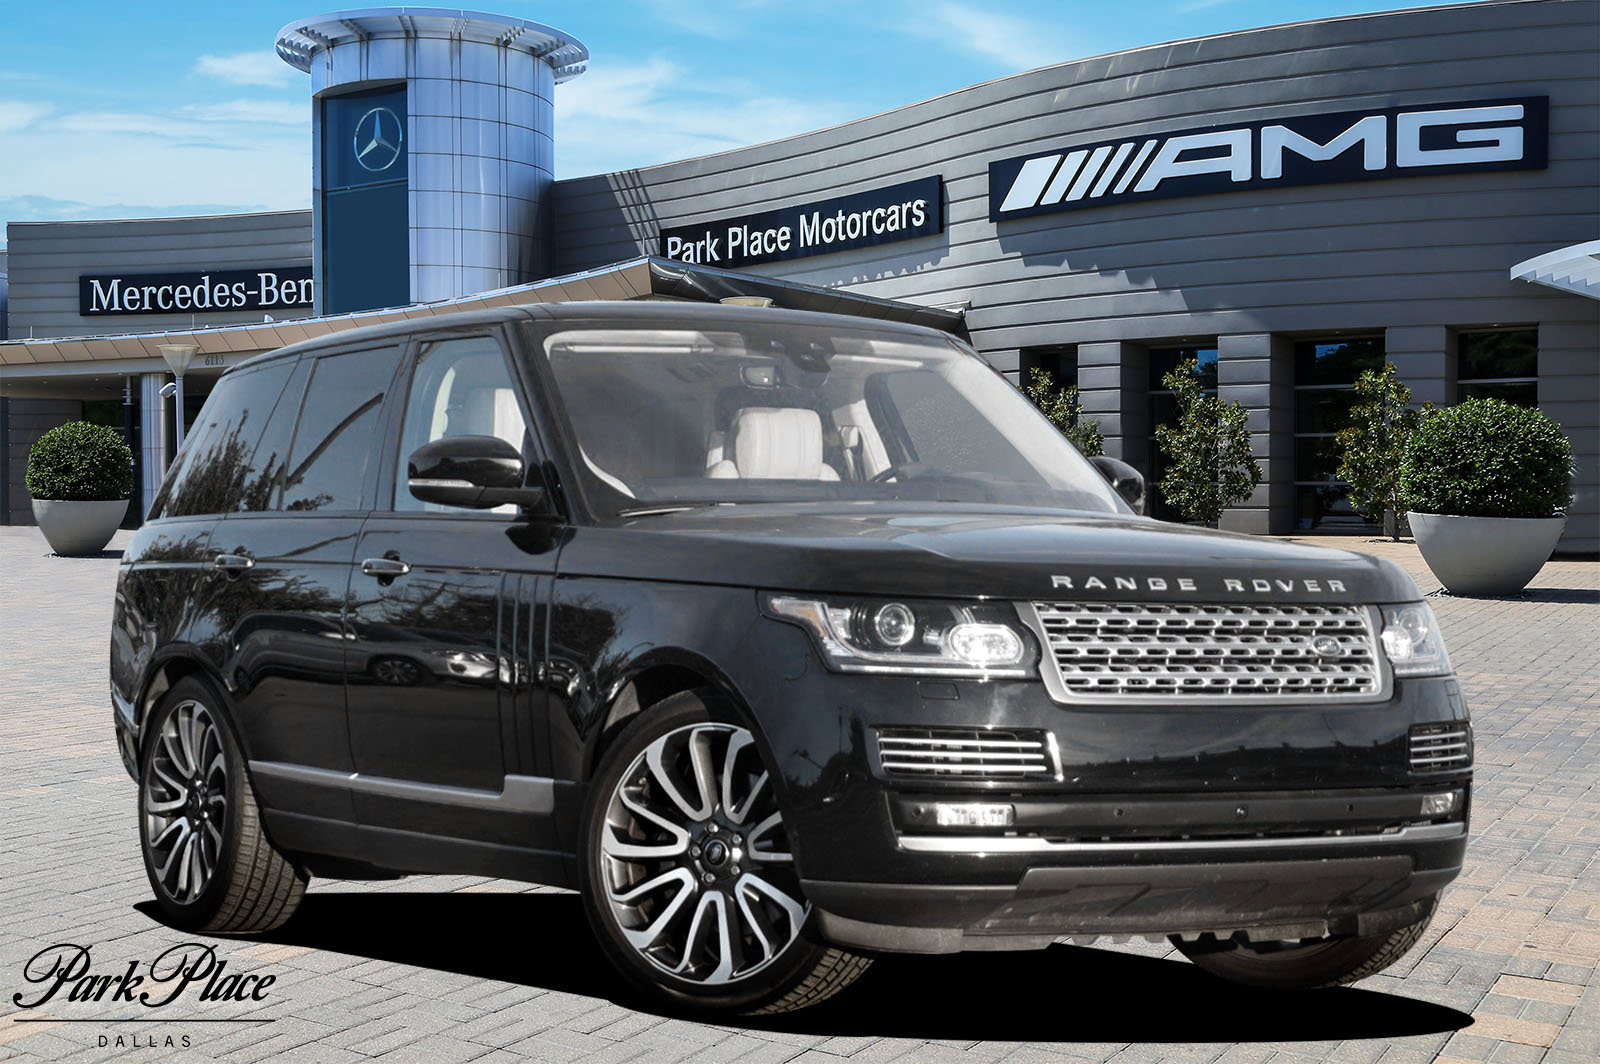 2017 Land Rover Range Rover Autobiography image